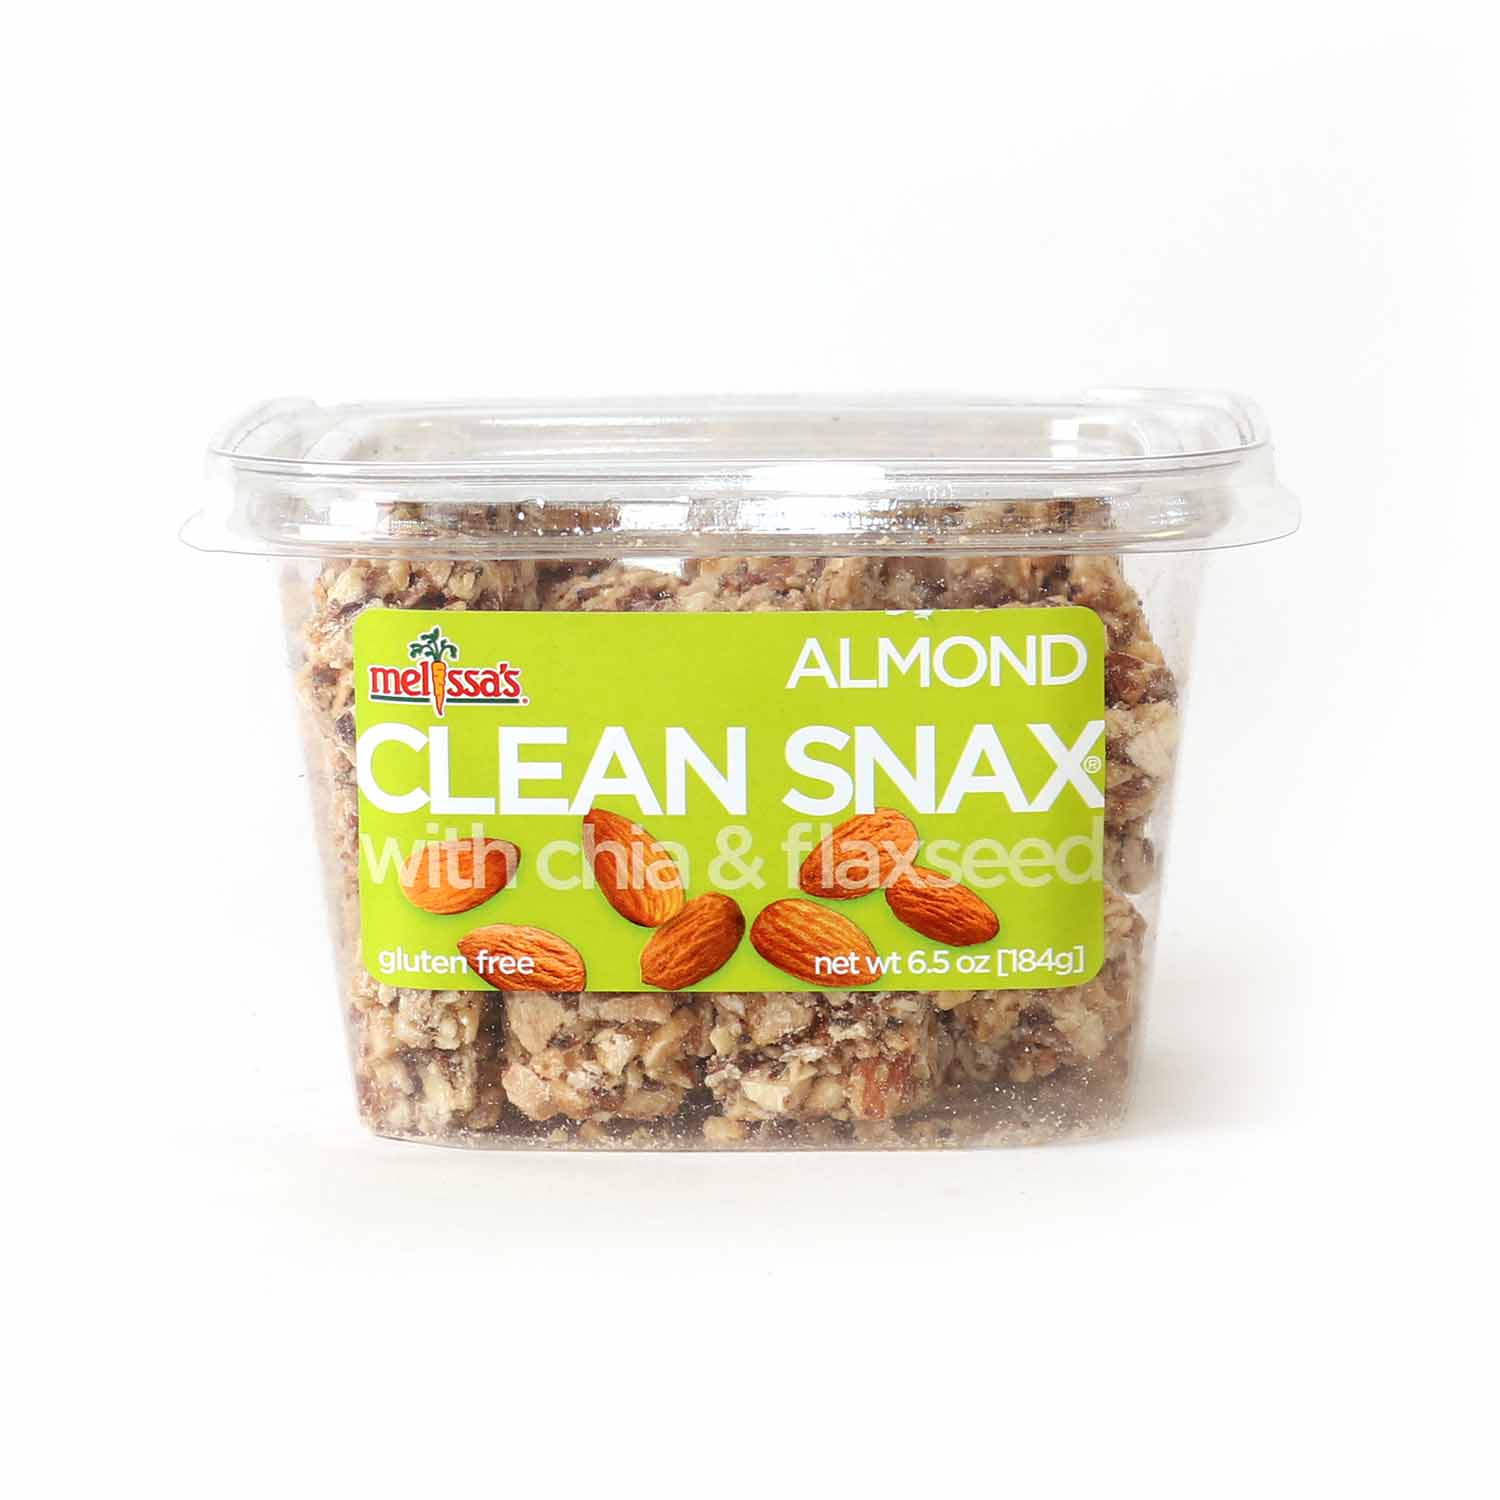 Clean Snax – Almond